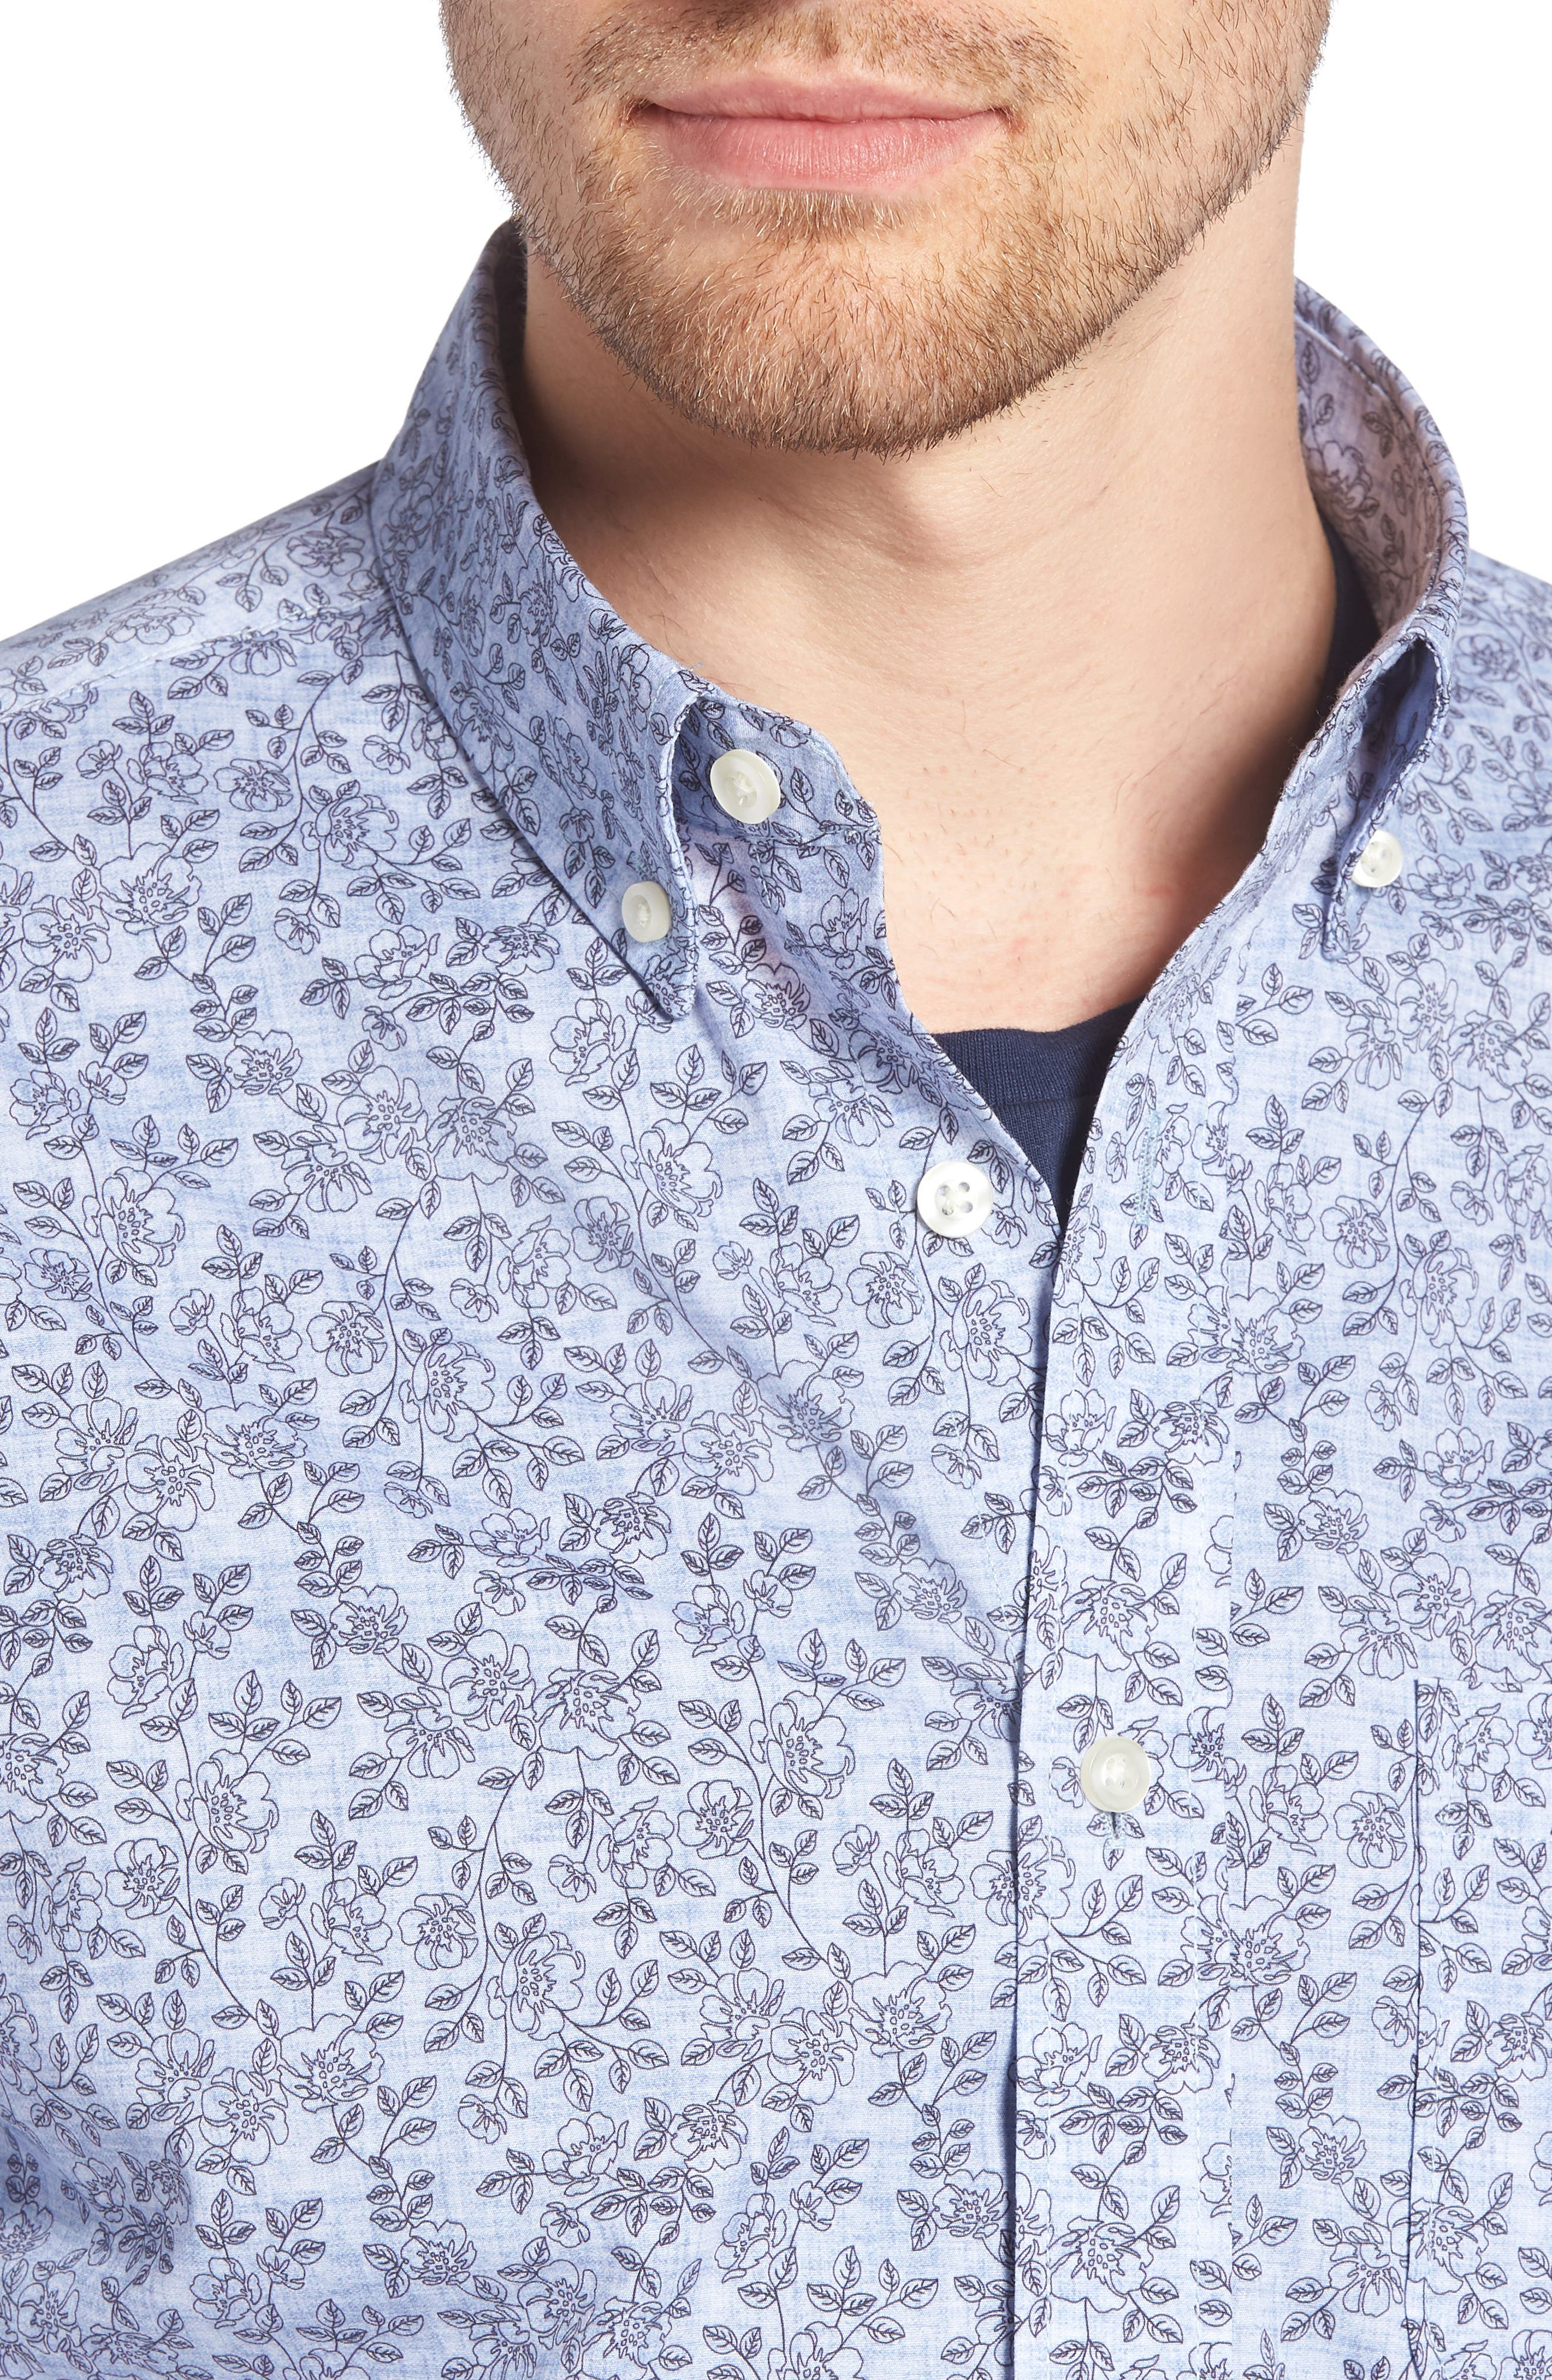 Trim Fit Chambray Floral Print Sport Shirt,                             Alternate thumbnail 2, color,                             Chambray Flower Print